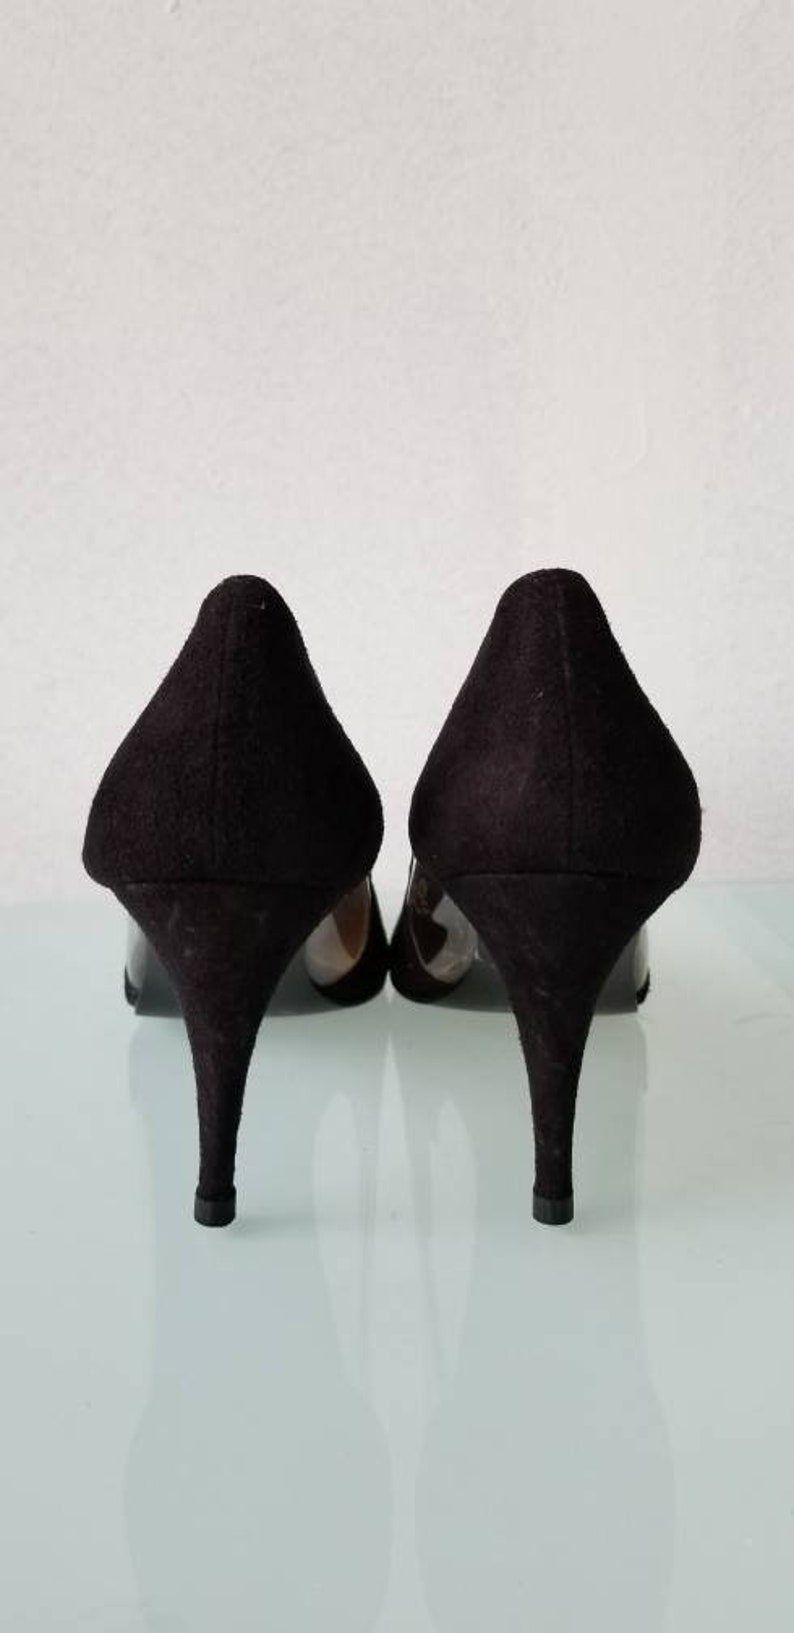 46c7aad61ddc0 NINA GLASS SLIPPERS // 80's Black Suede Leather Spain Heels Pumps See  Through Size 9 Party Valley Girl Halloween Costume Deadstock